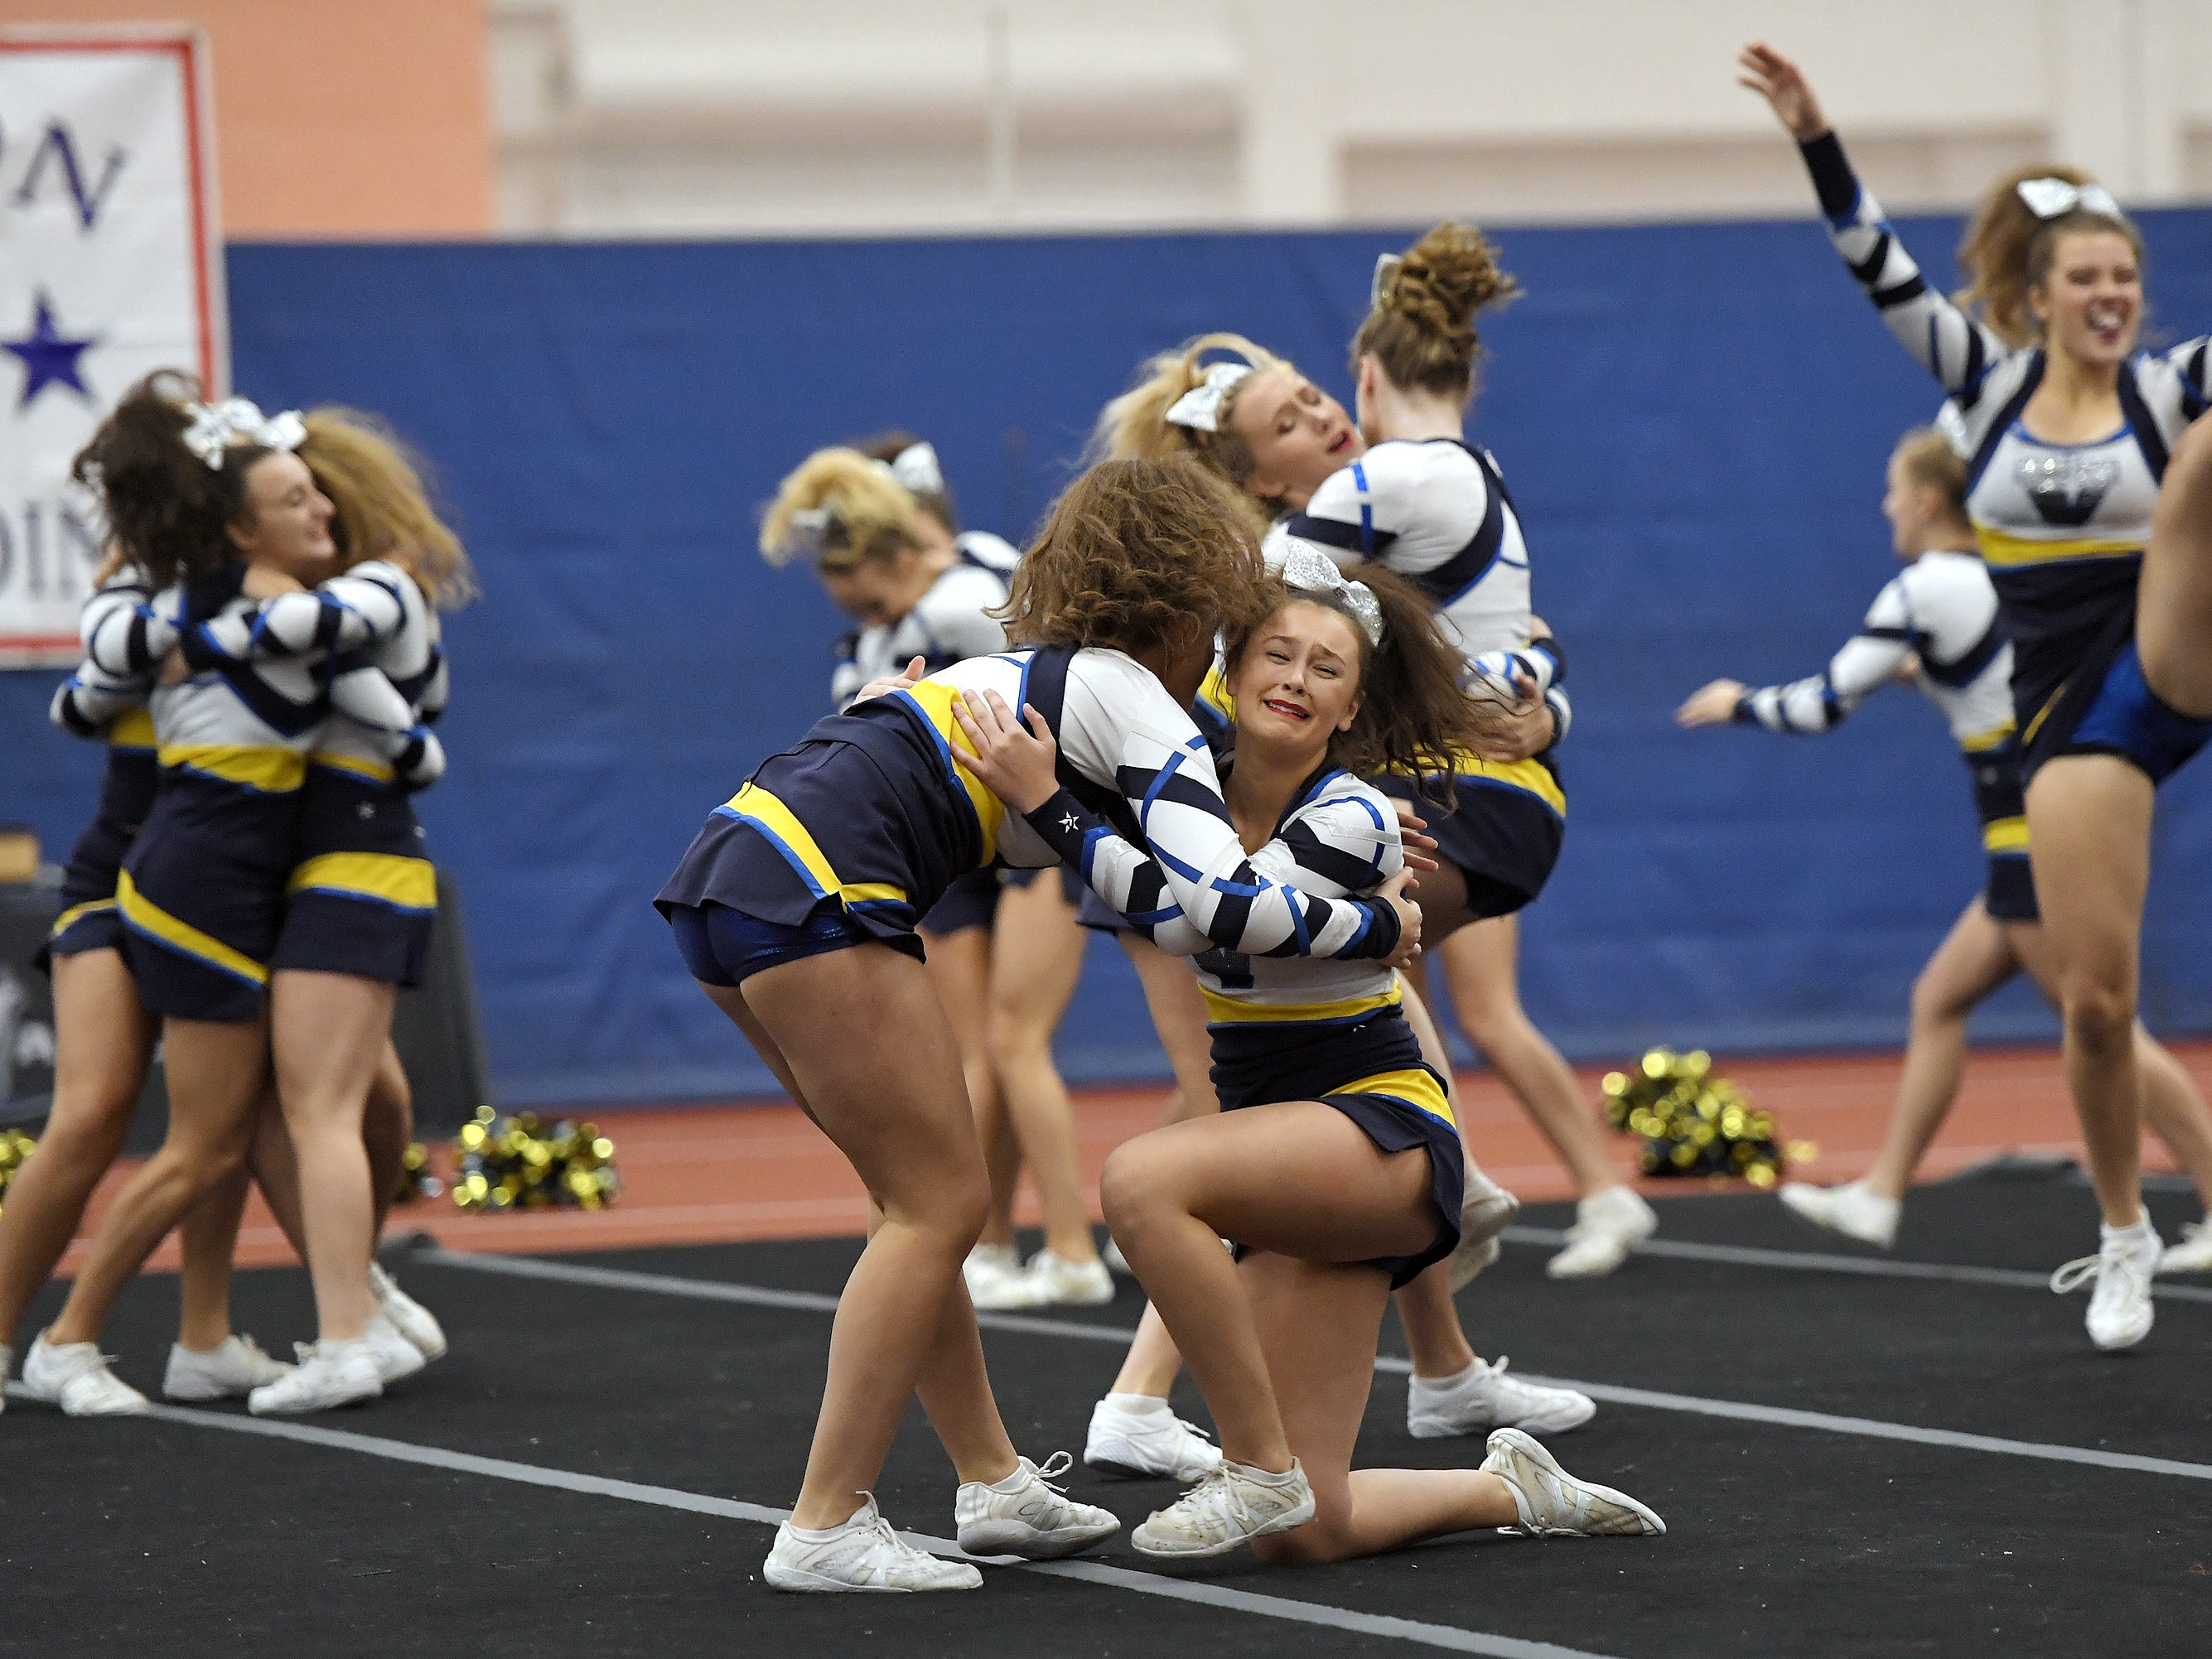 Victor cheerleaders celebrate after their routine during the Section V Fall Cheerleading Championships at RIT, Saturday, Oct. 27, 2018.